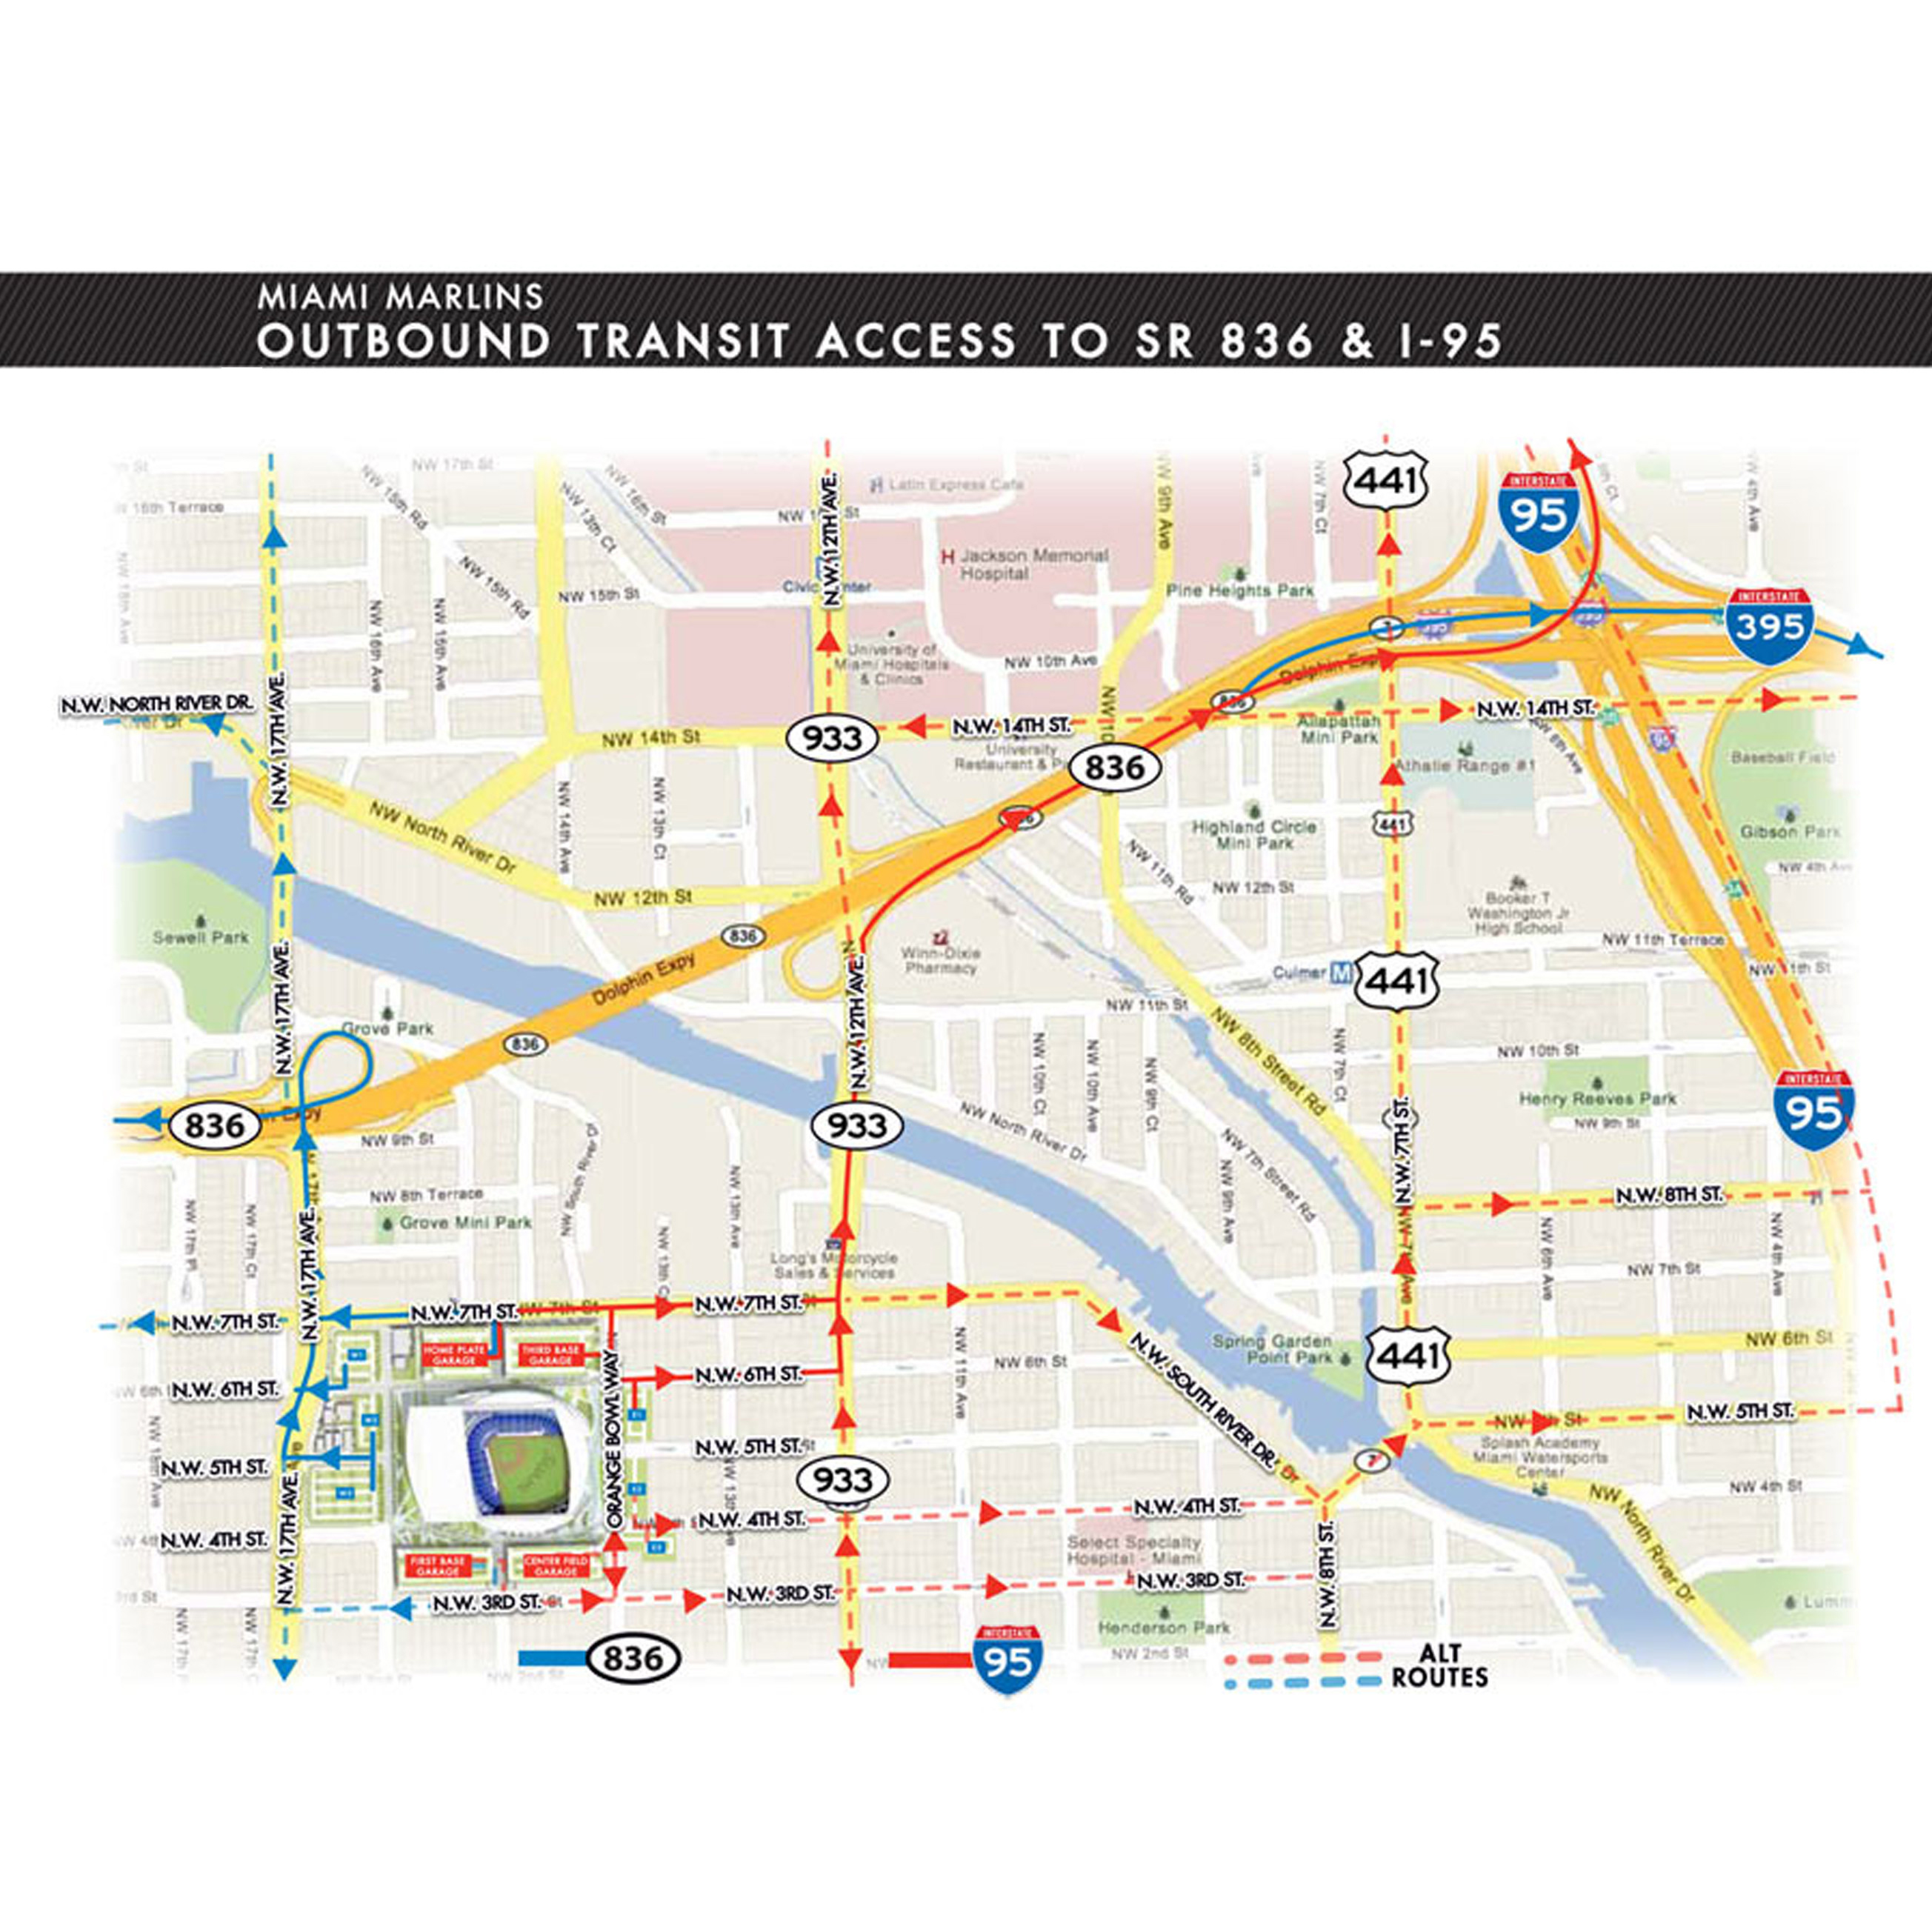 Driving Directions to Marlins Park | Miami Marlins